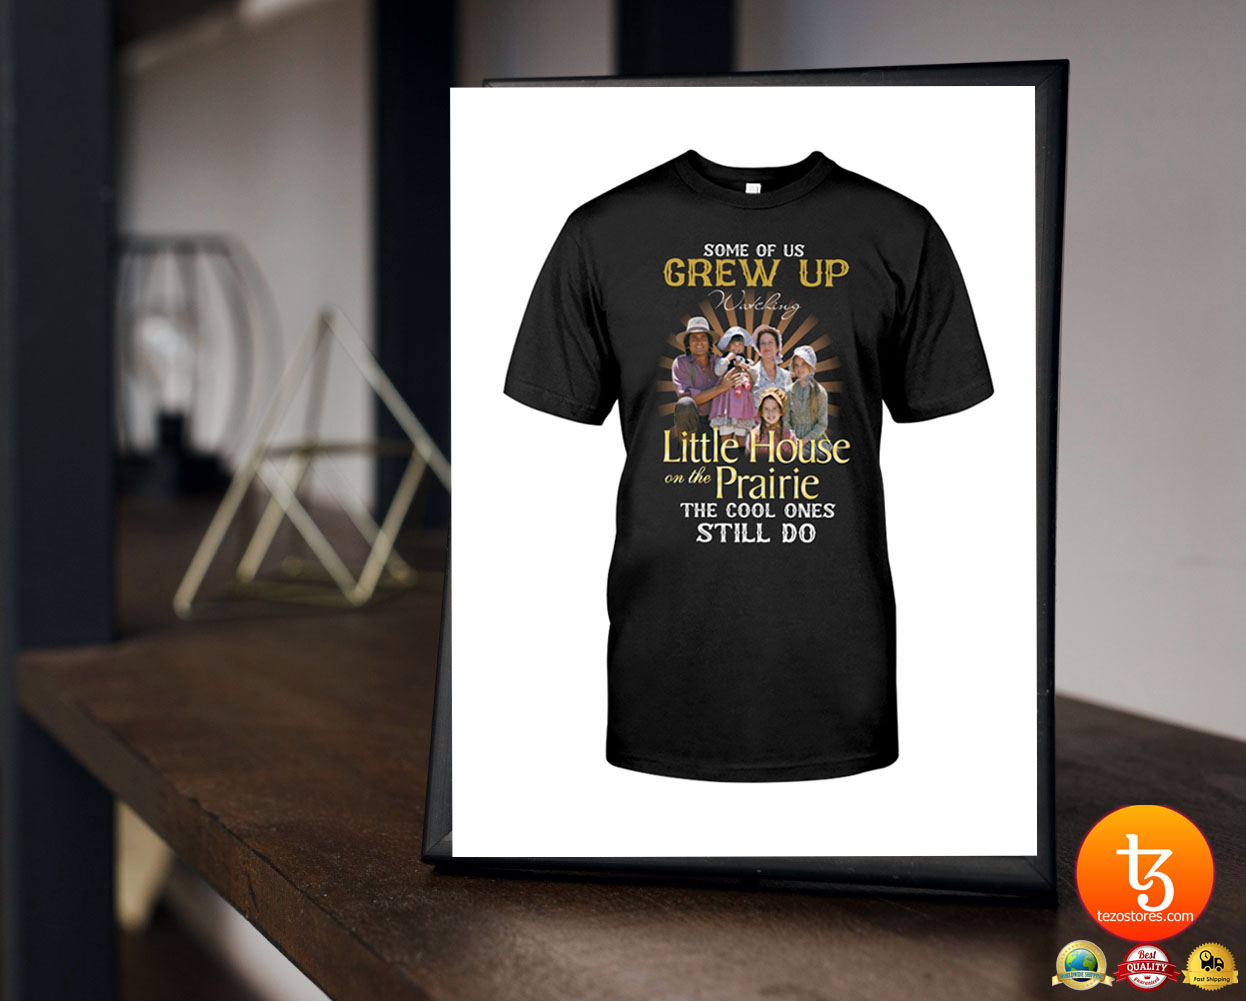 Some of us grew up little house on the prairie the cool ones still do shirt